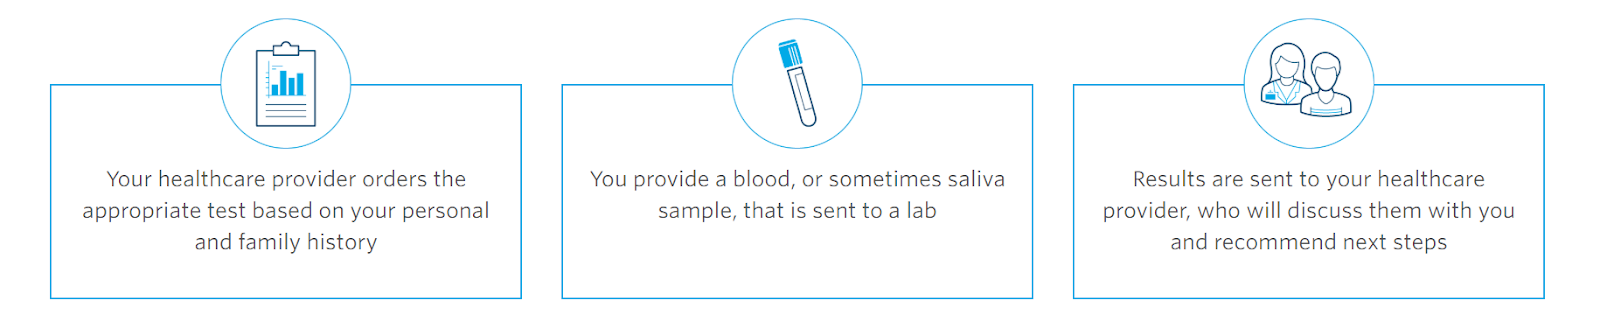 Steps to take for your your genetic testing with Ambry Genetics, starting from contacting healthcare provider, providing your tissue samples, and sending it.